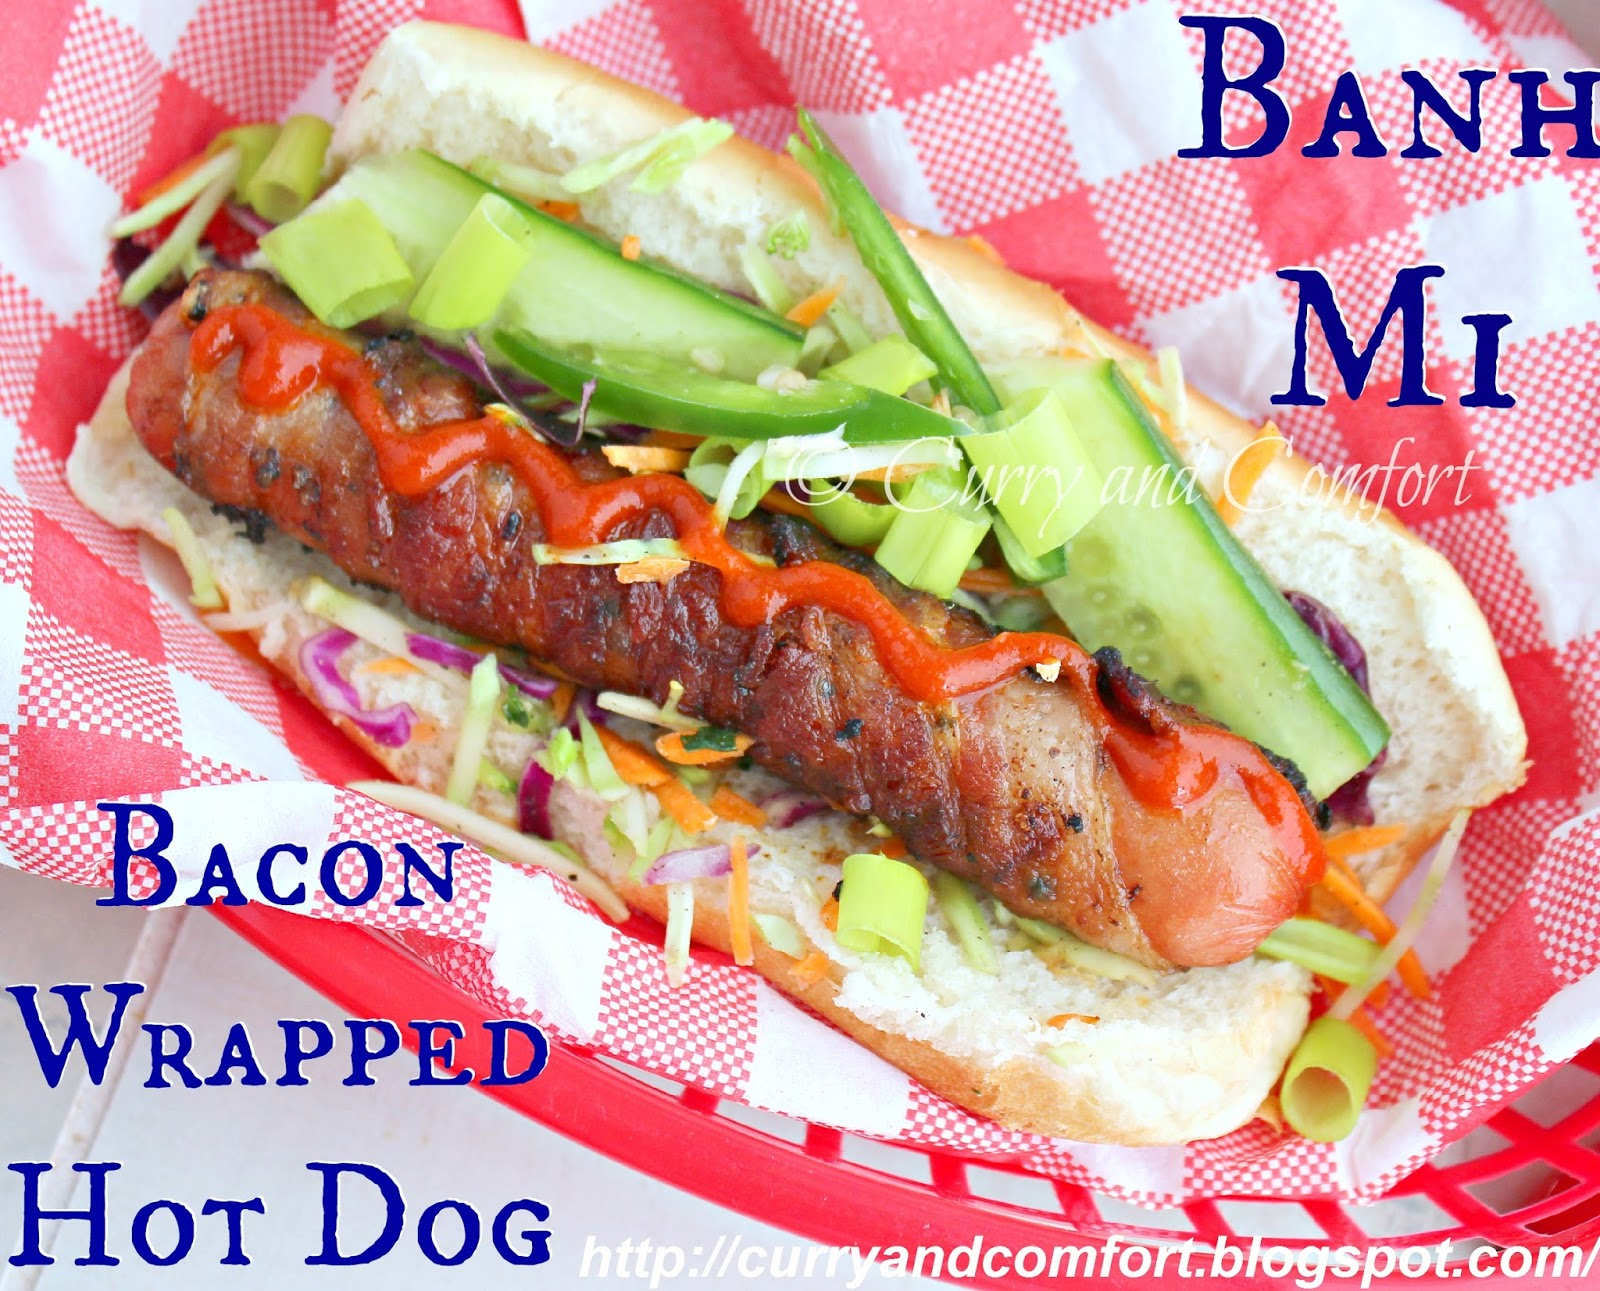 Kitchen Simmer: Banh Mi Bacon Wrapped Hot Dog #goodcookcom